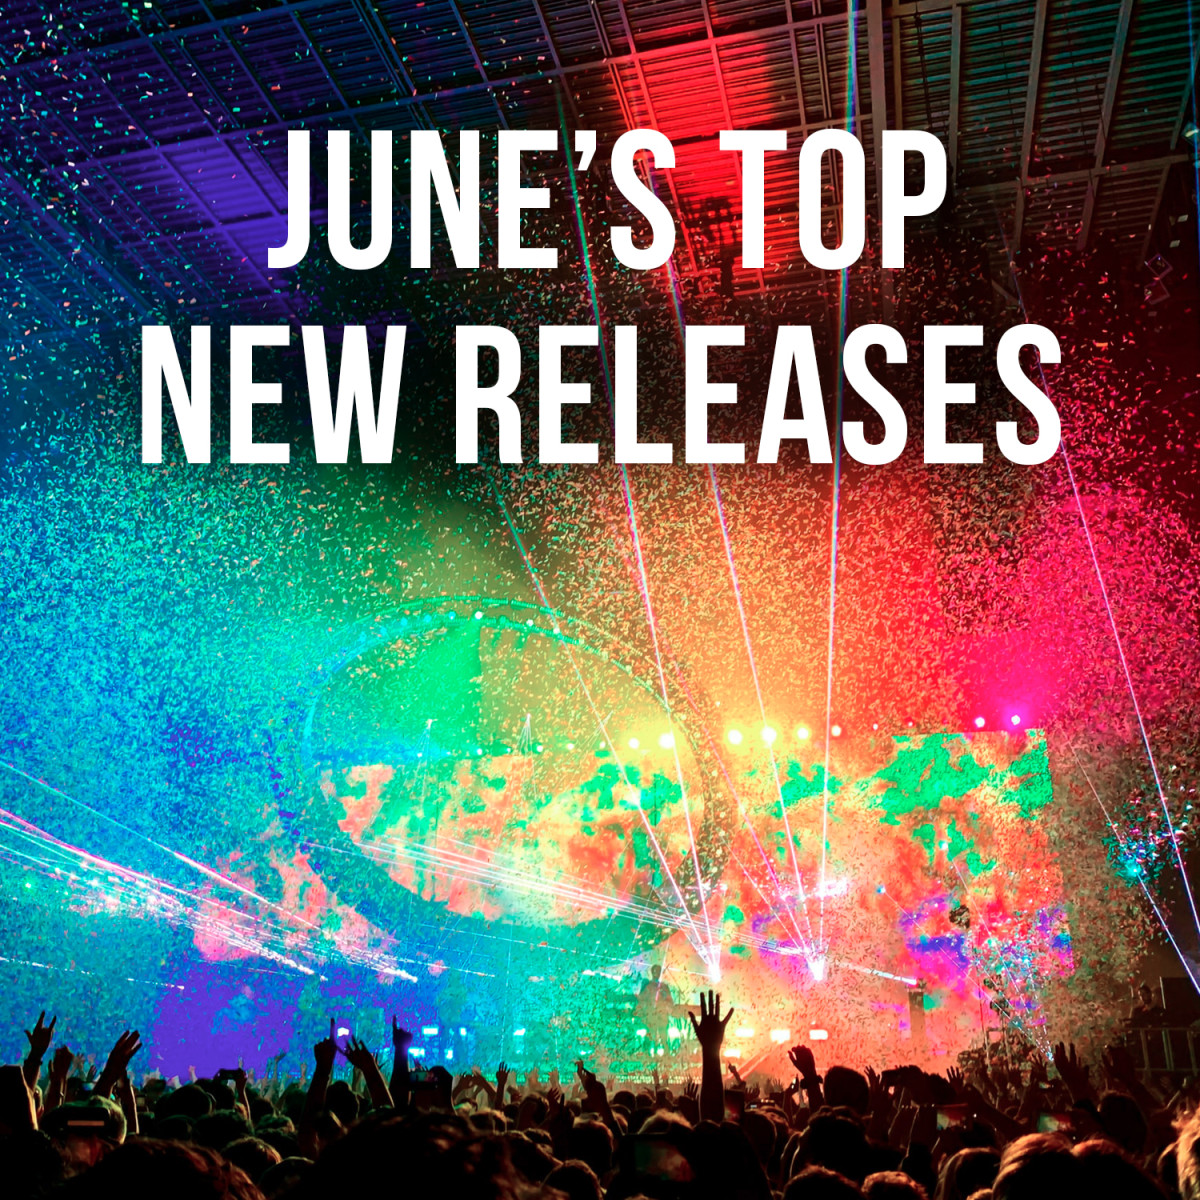 Cool off with June's Chill New Releases [Playlist]